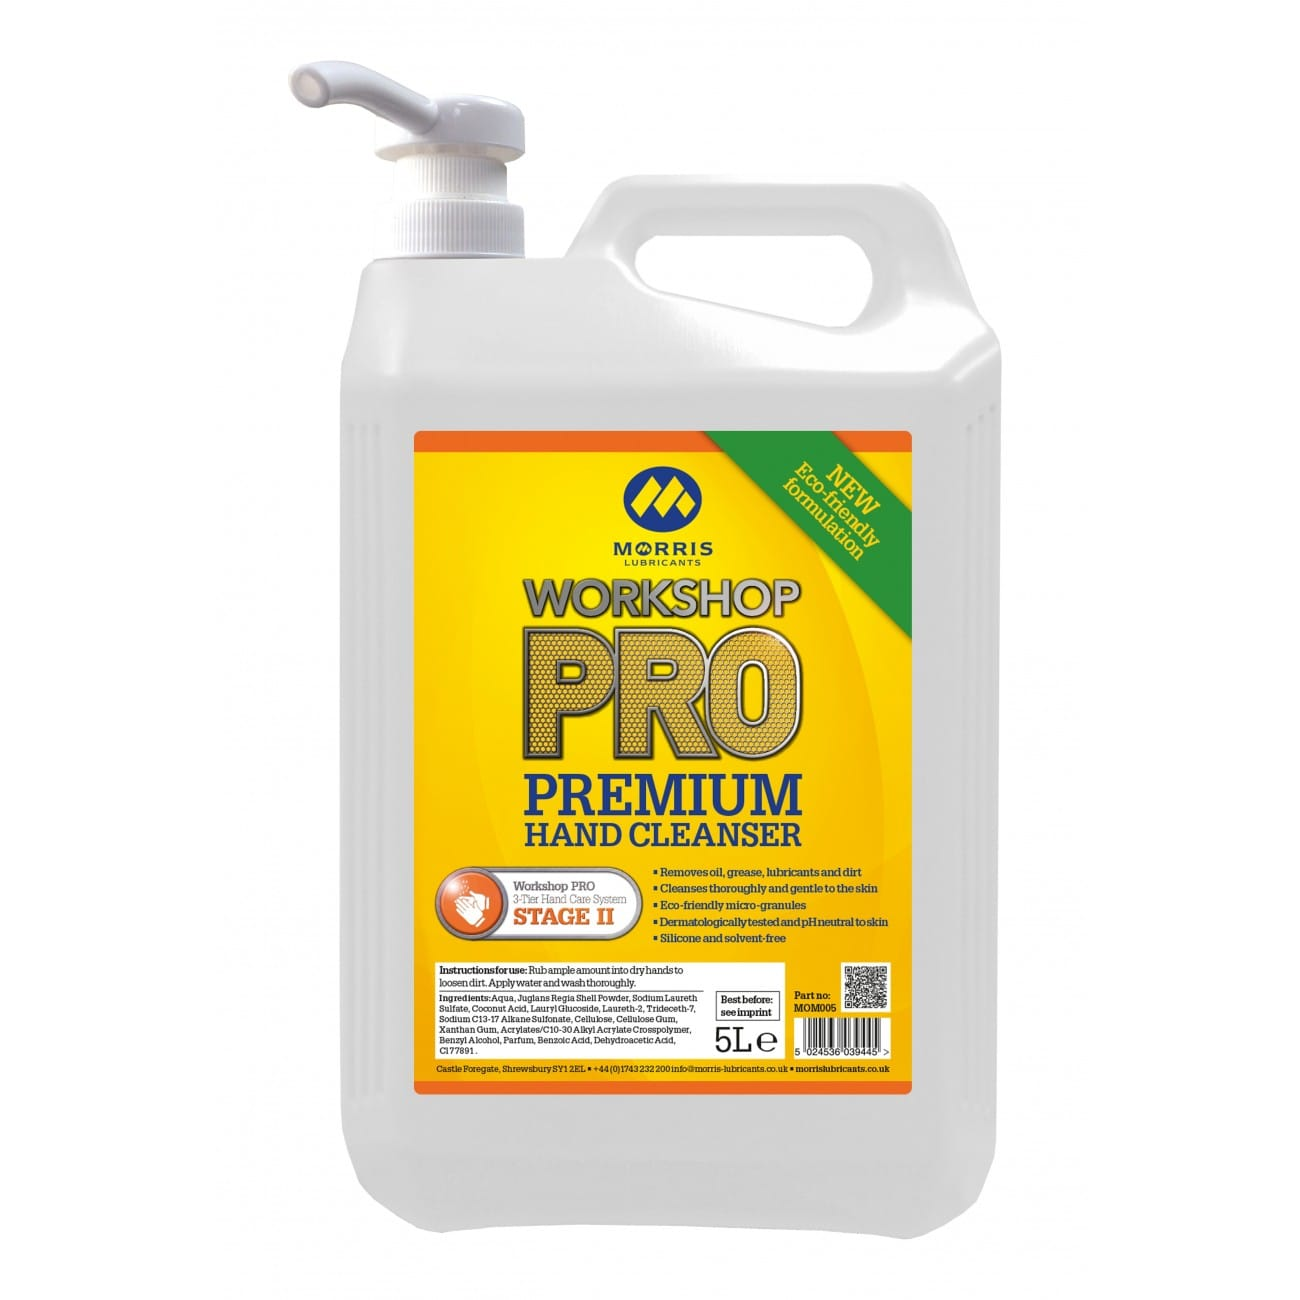 Workshop PRO Premium Hand Cleanser inc Pump (Previously Momento)